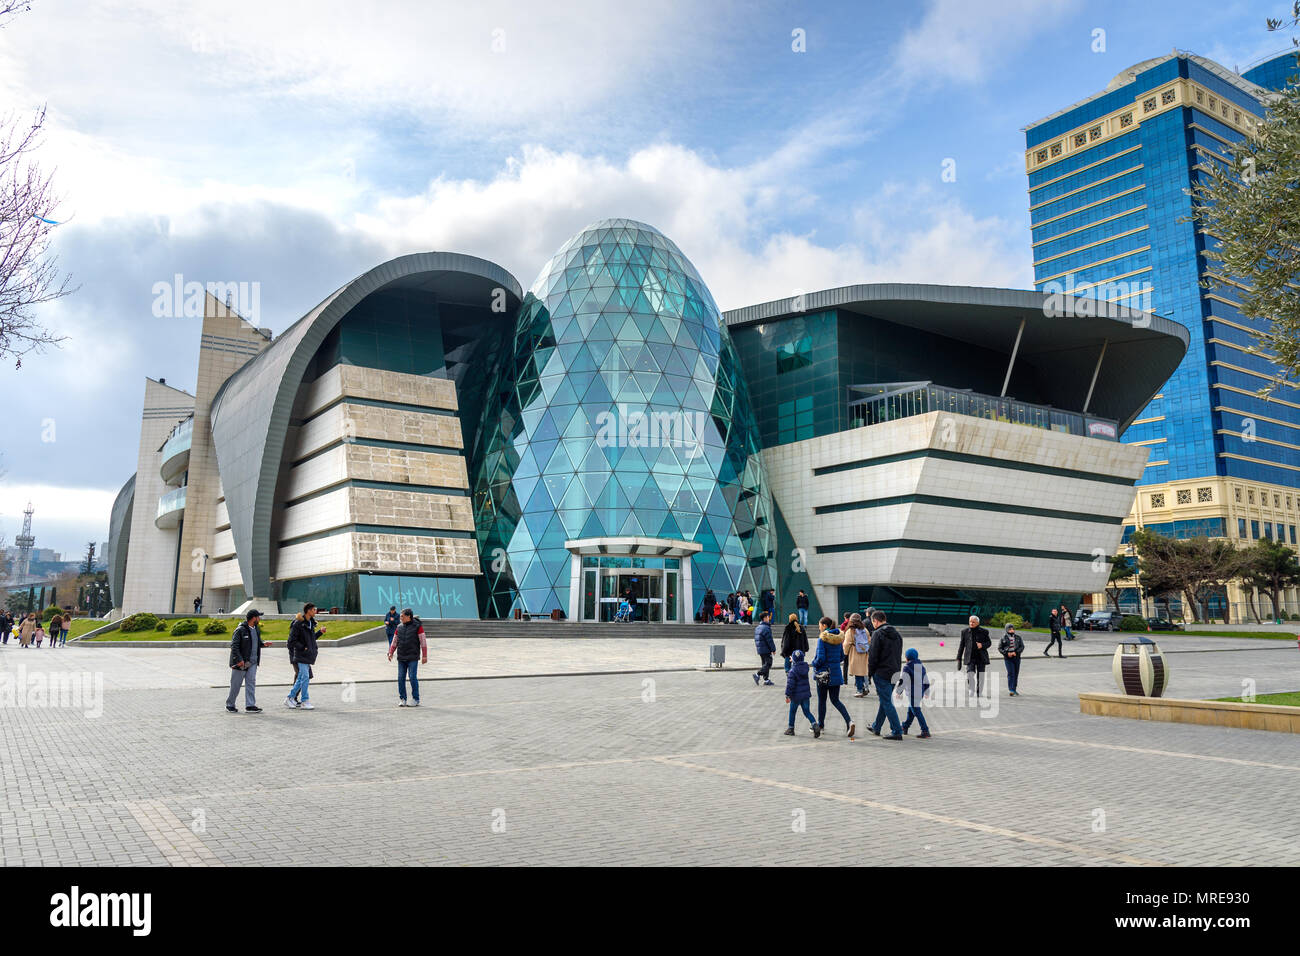 Baku, Azerbaijan - March 11, 2018: View of Park Bulvar Mall is shopping center - Stock Image